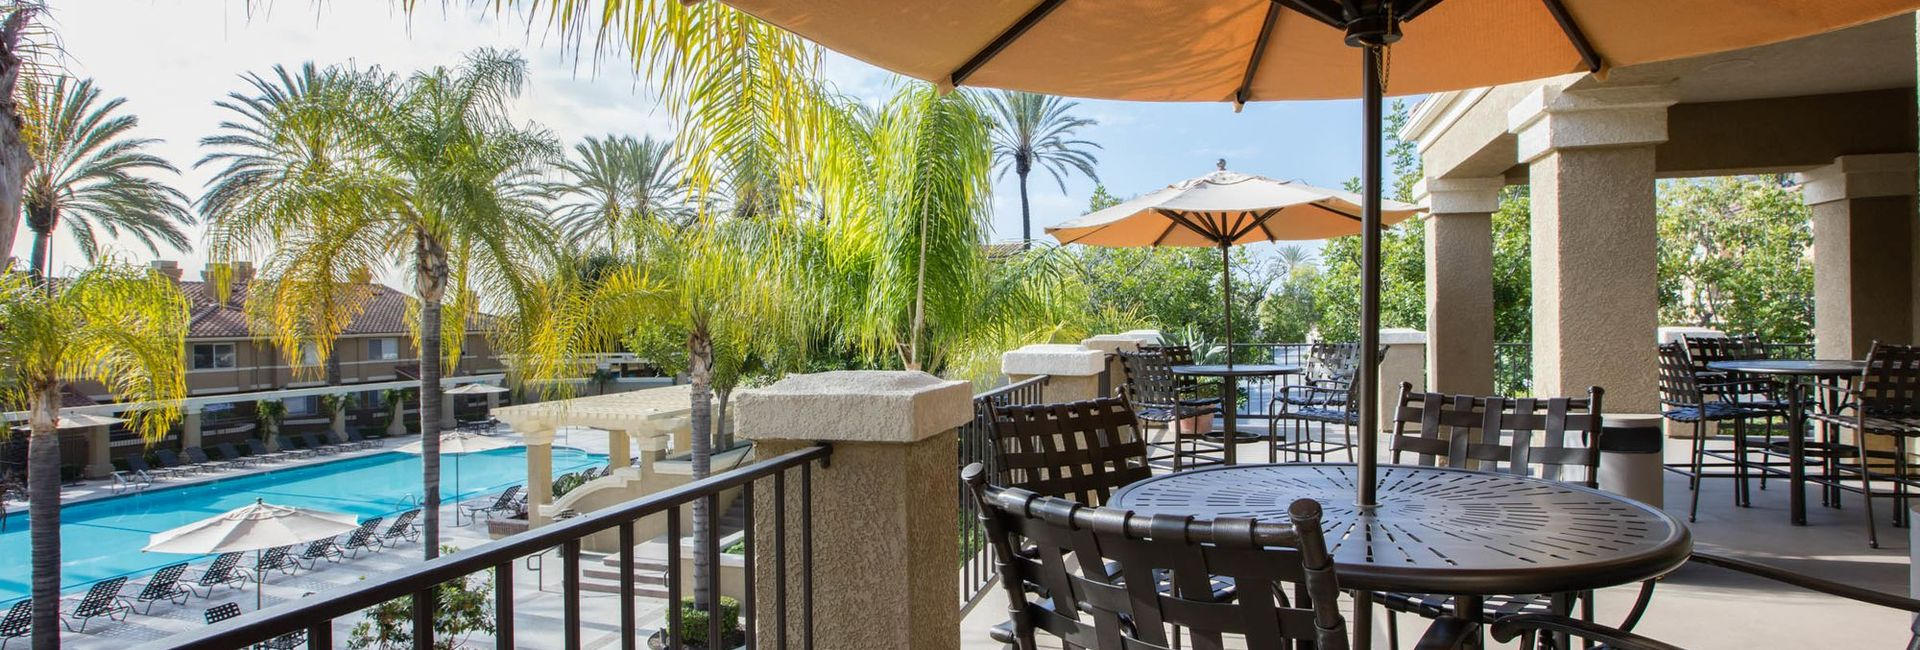 Apartments For Rent In Aliso Viejo, CA | Barcelona Resort Apartments   Home